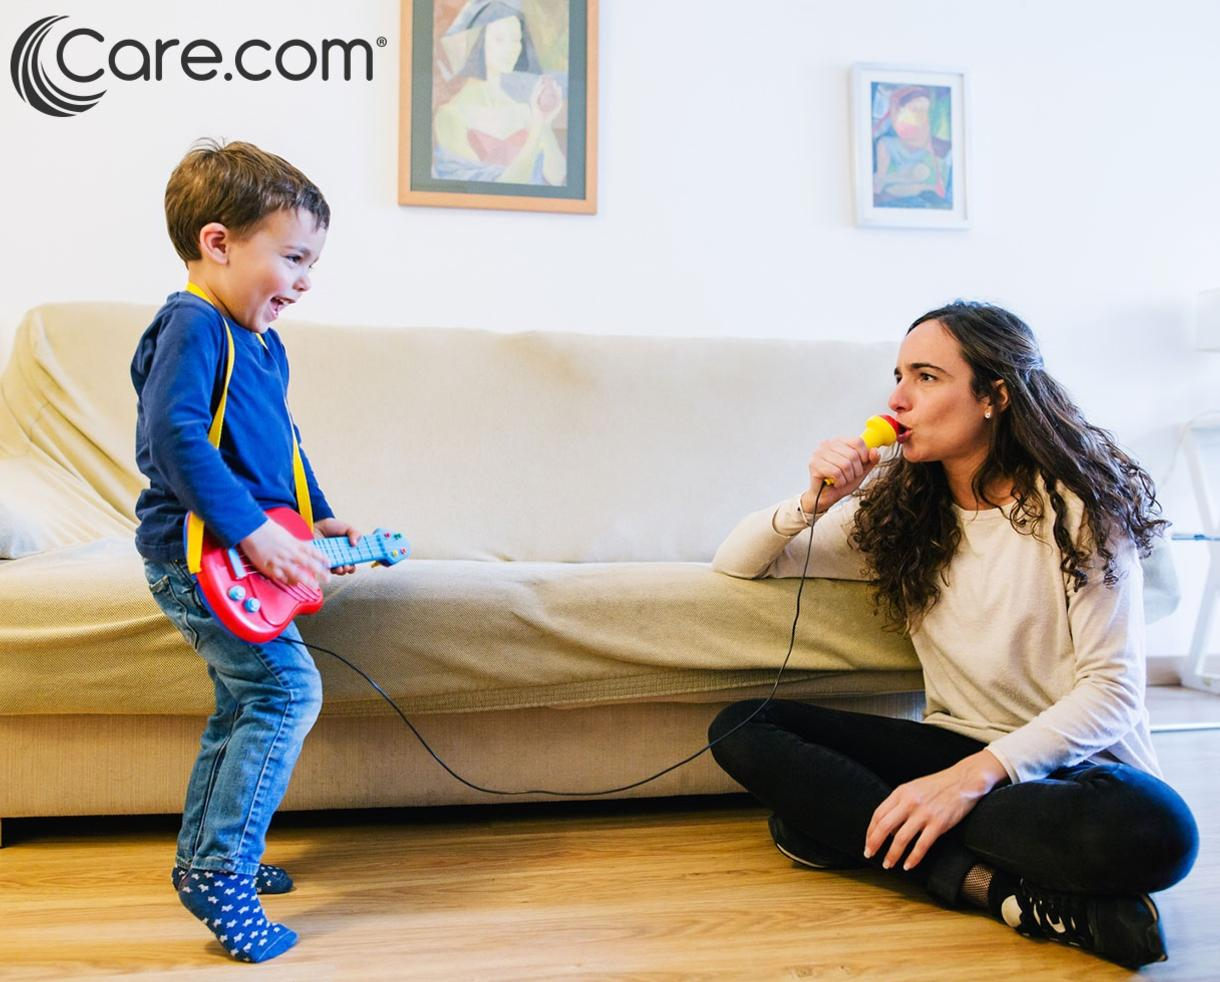 Save 30% on CARE.COM! #1 Choice for Nannies & Babysitters, Housekeepers, Dog Walkers & More!